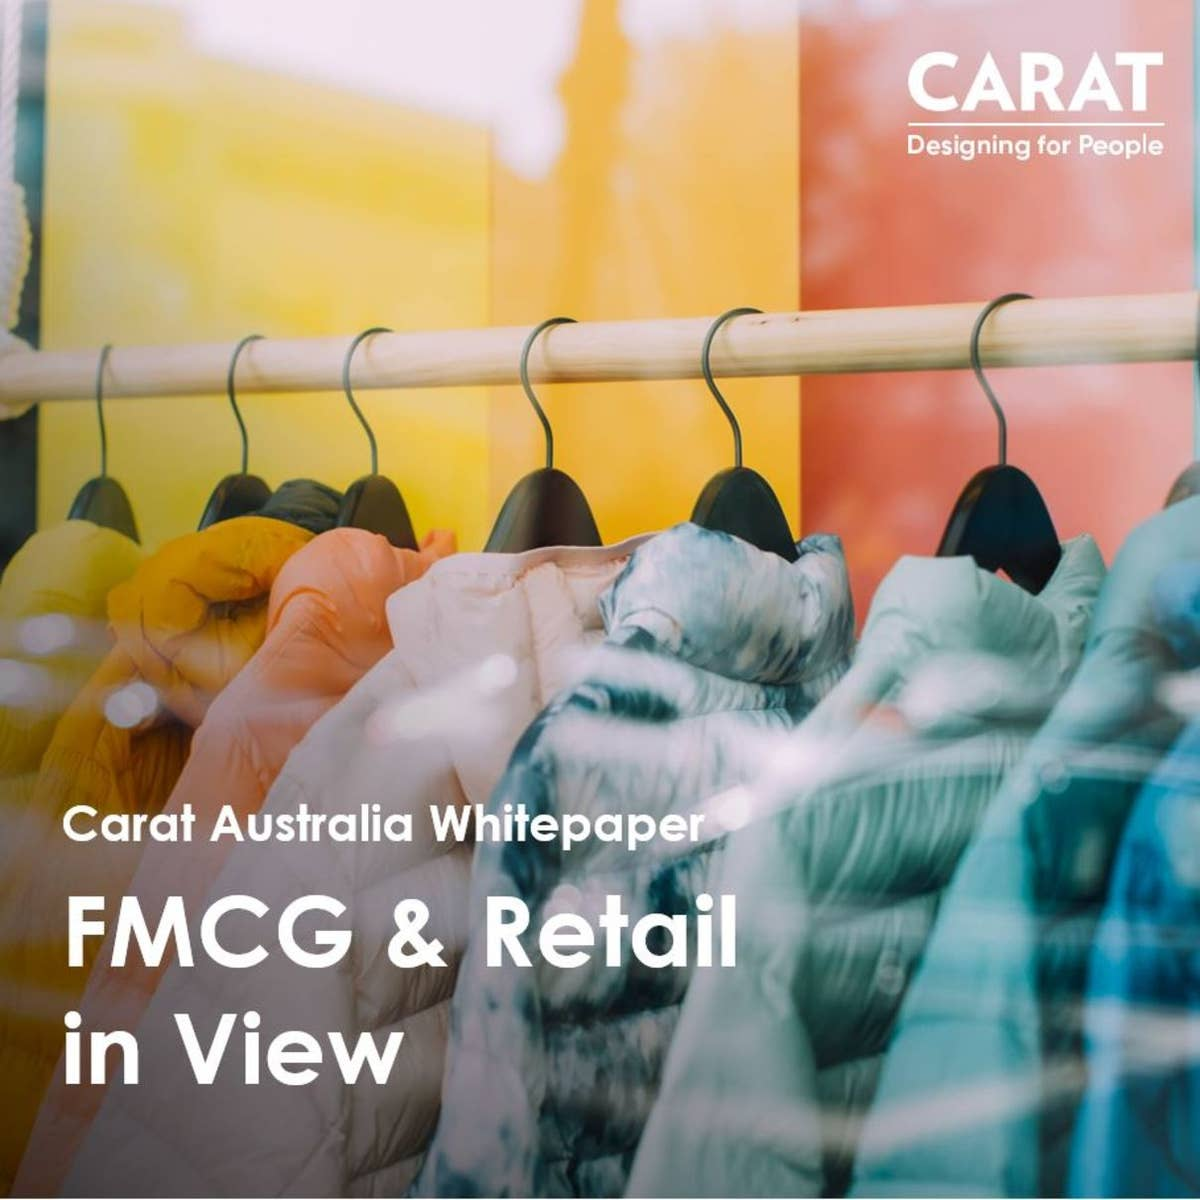 FMCG & Retail in View